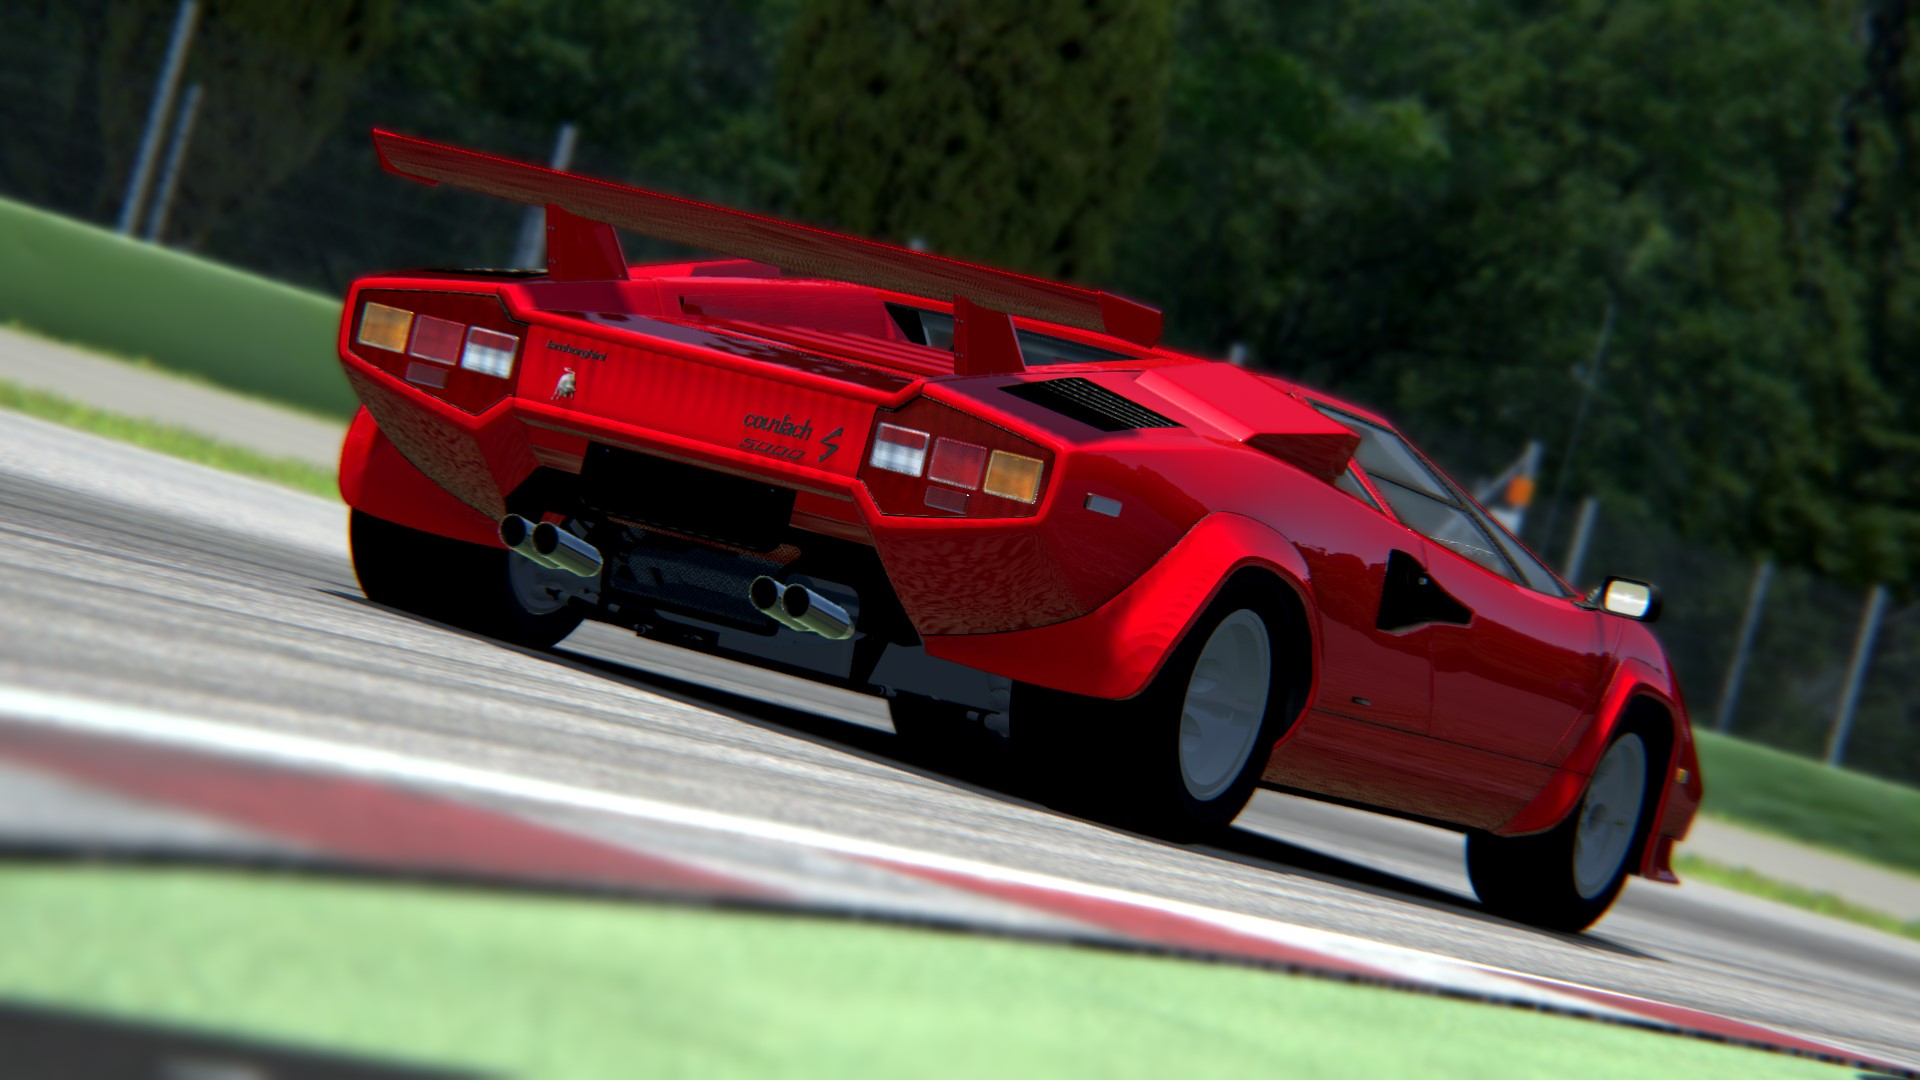 assetto corsa lamborghini countach imola 3 by. Black Bedroom Furniture Sets. Home Design Ideas